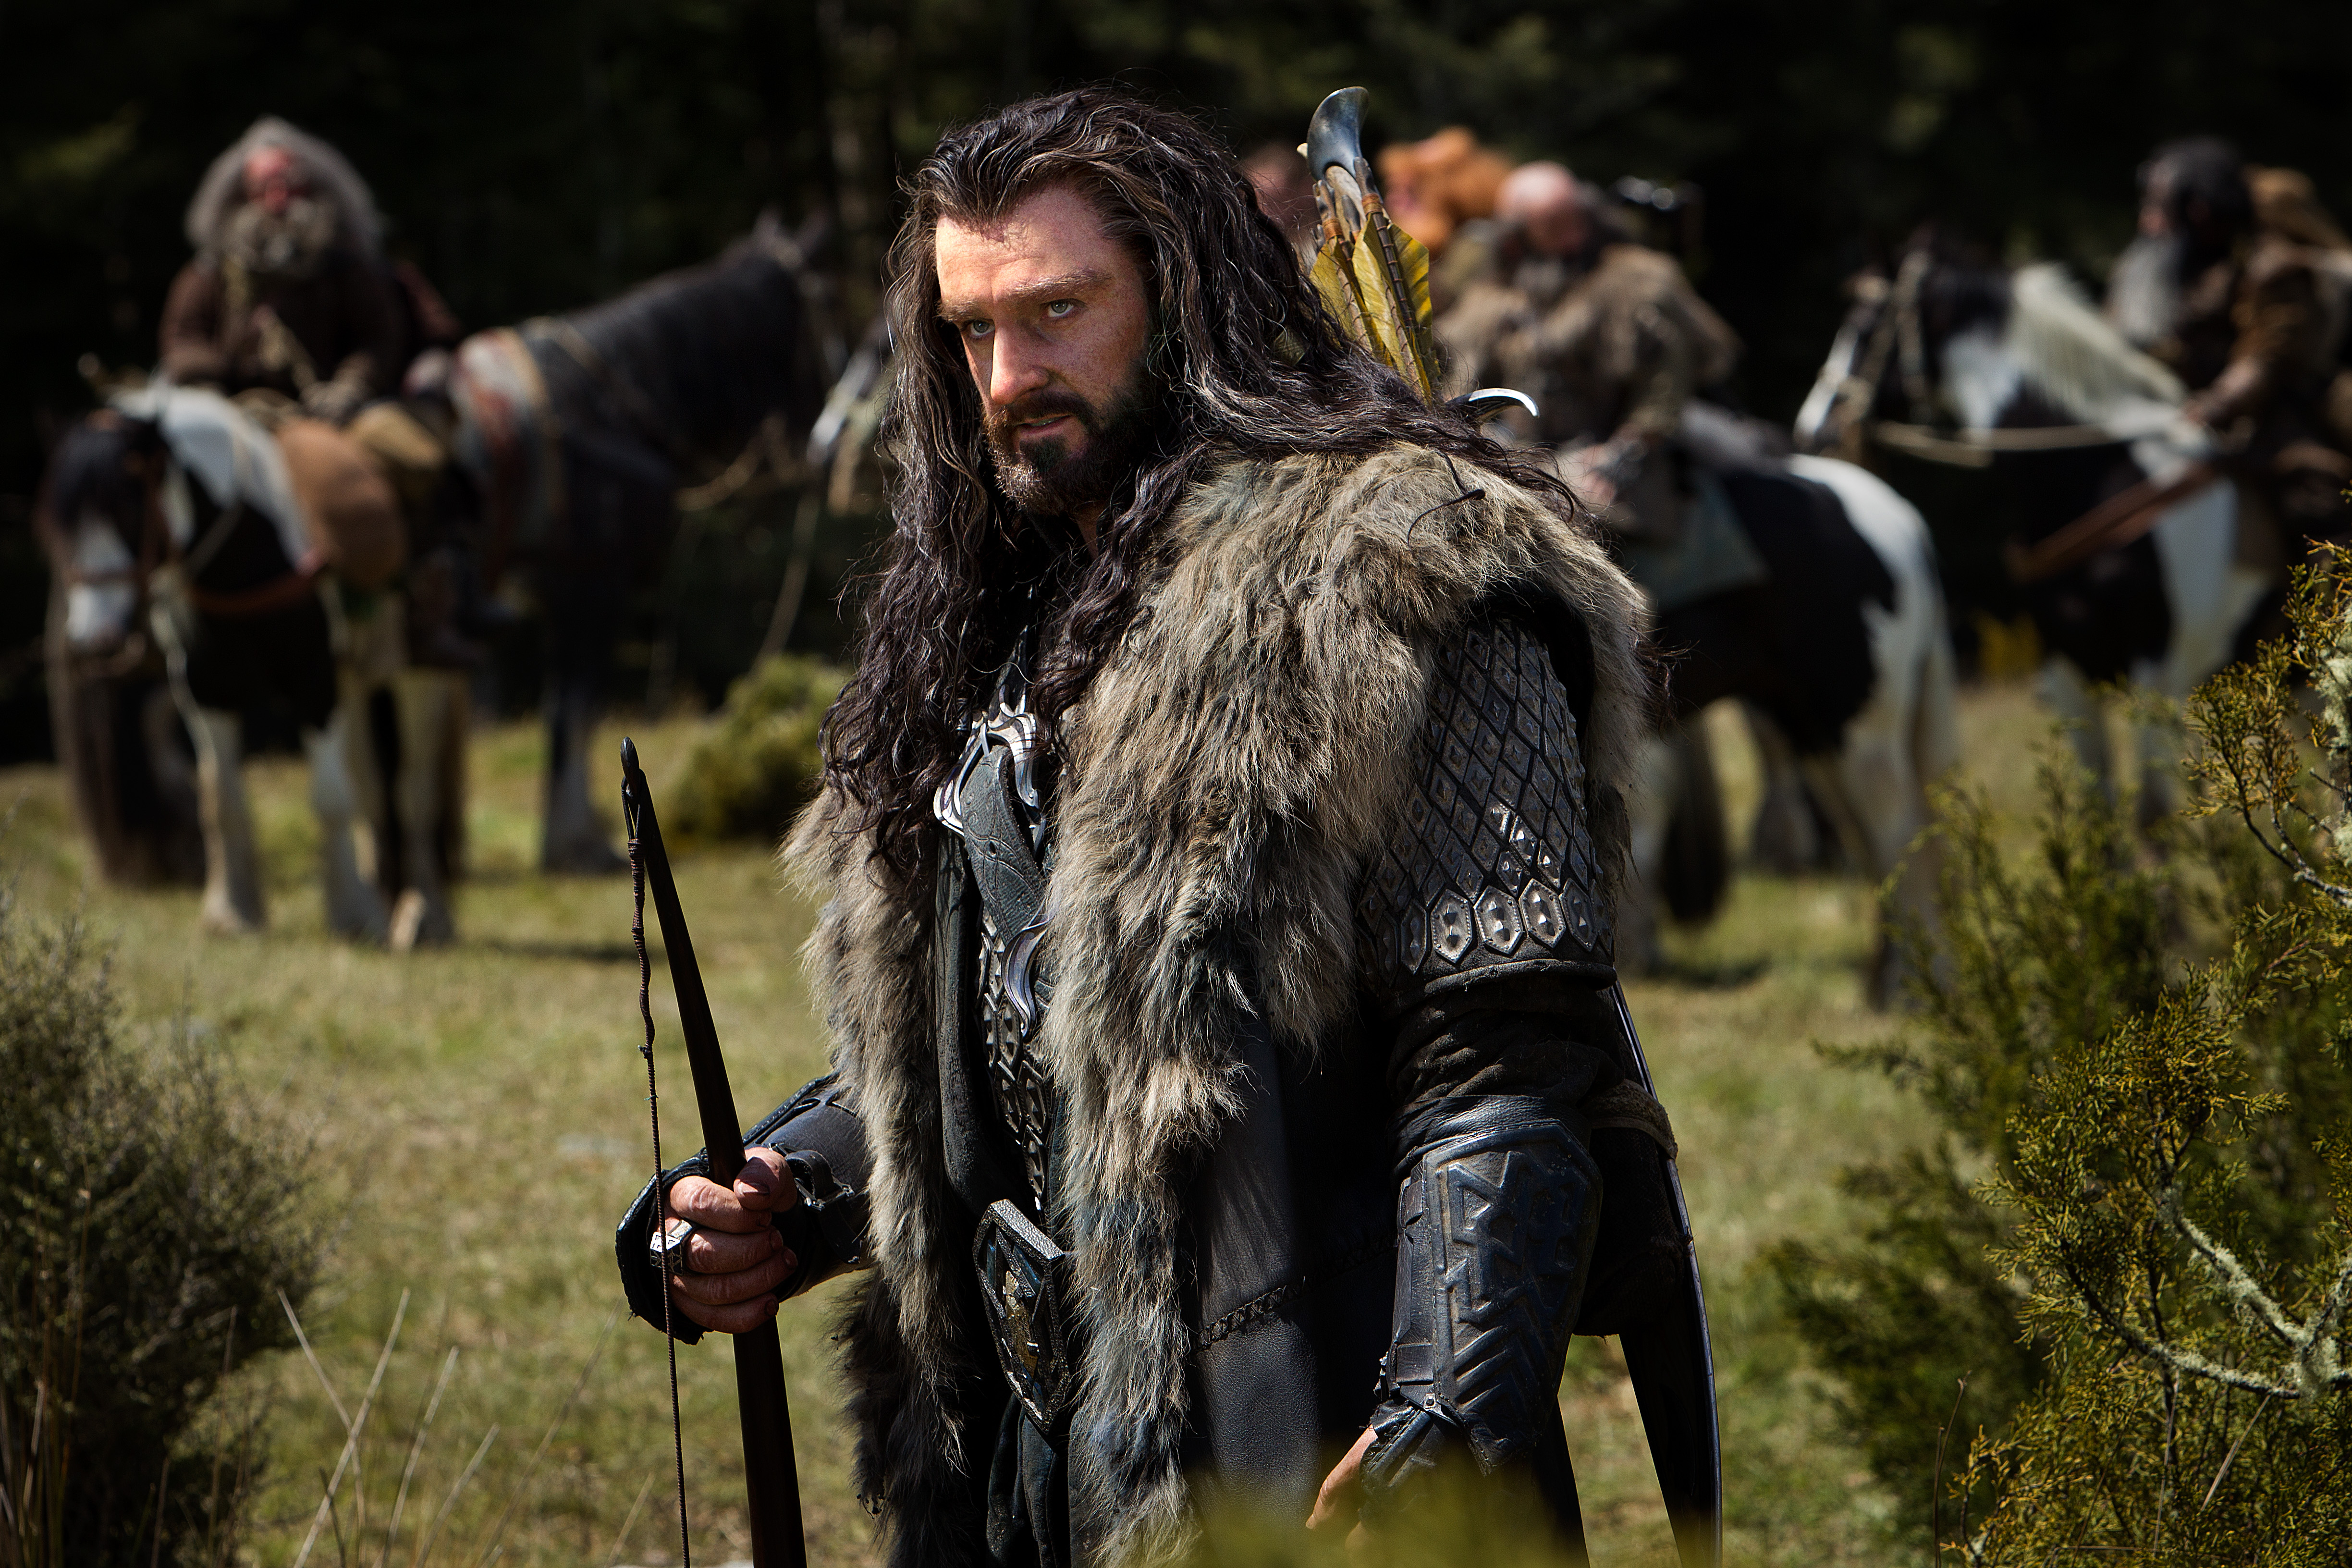 http://www.heyuguys.co.uk/images/2012/11/Richard-Armitage-in-The-Hobbit-An-Unexpected-Journey.jpg